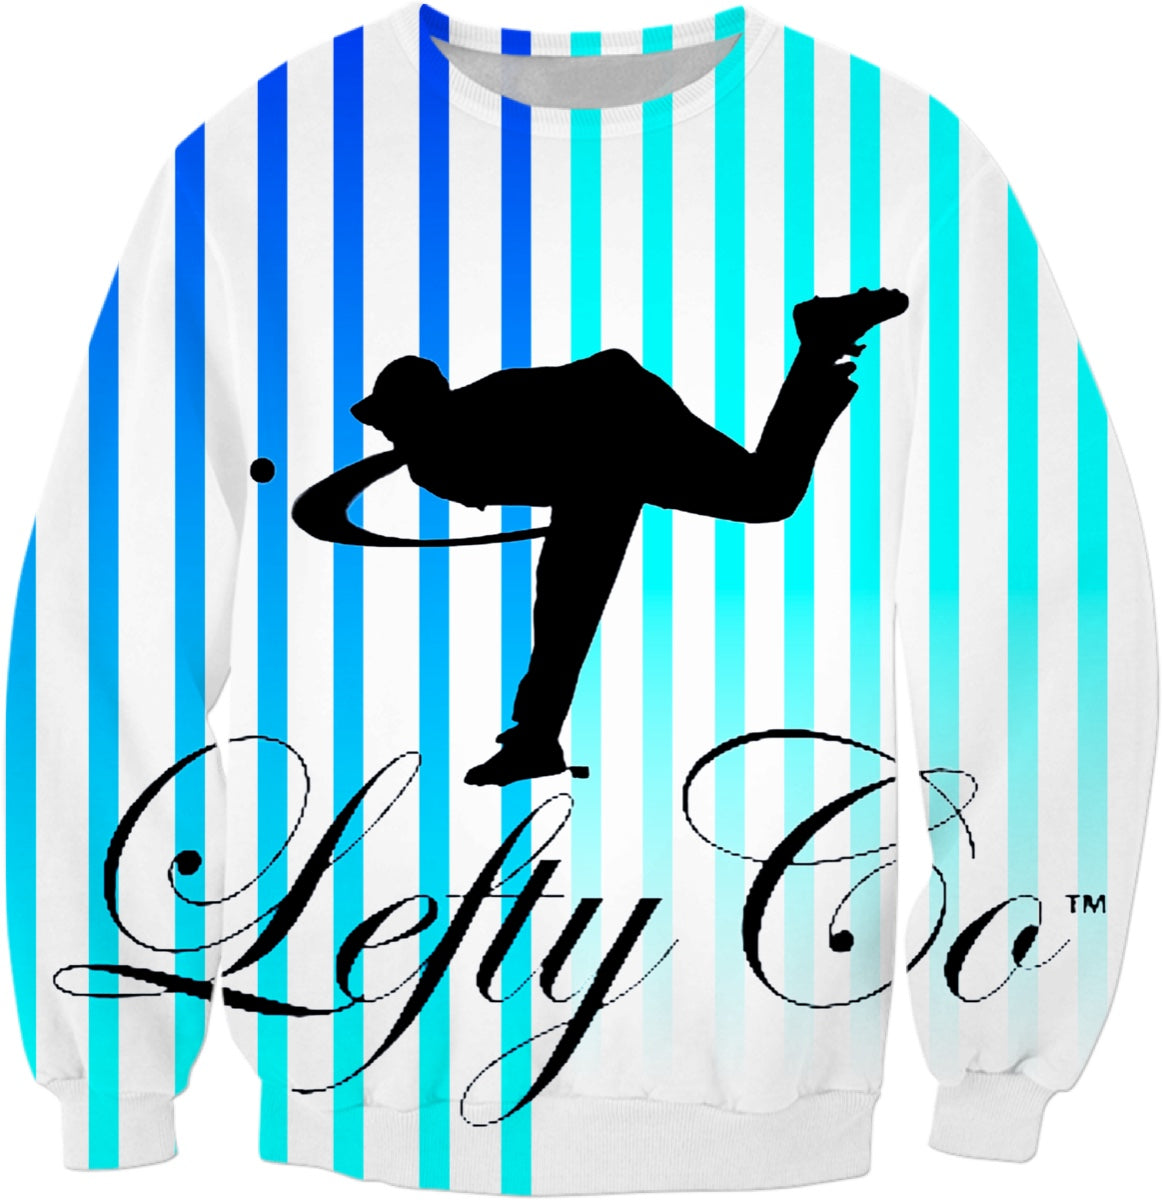 LEFTYCO ~ Cool Breeze sweatshirt